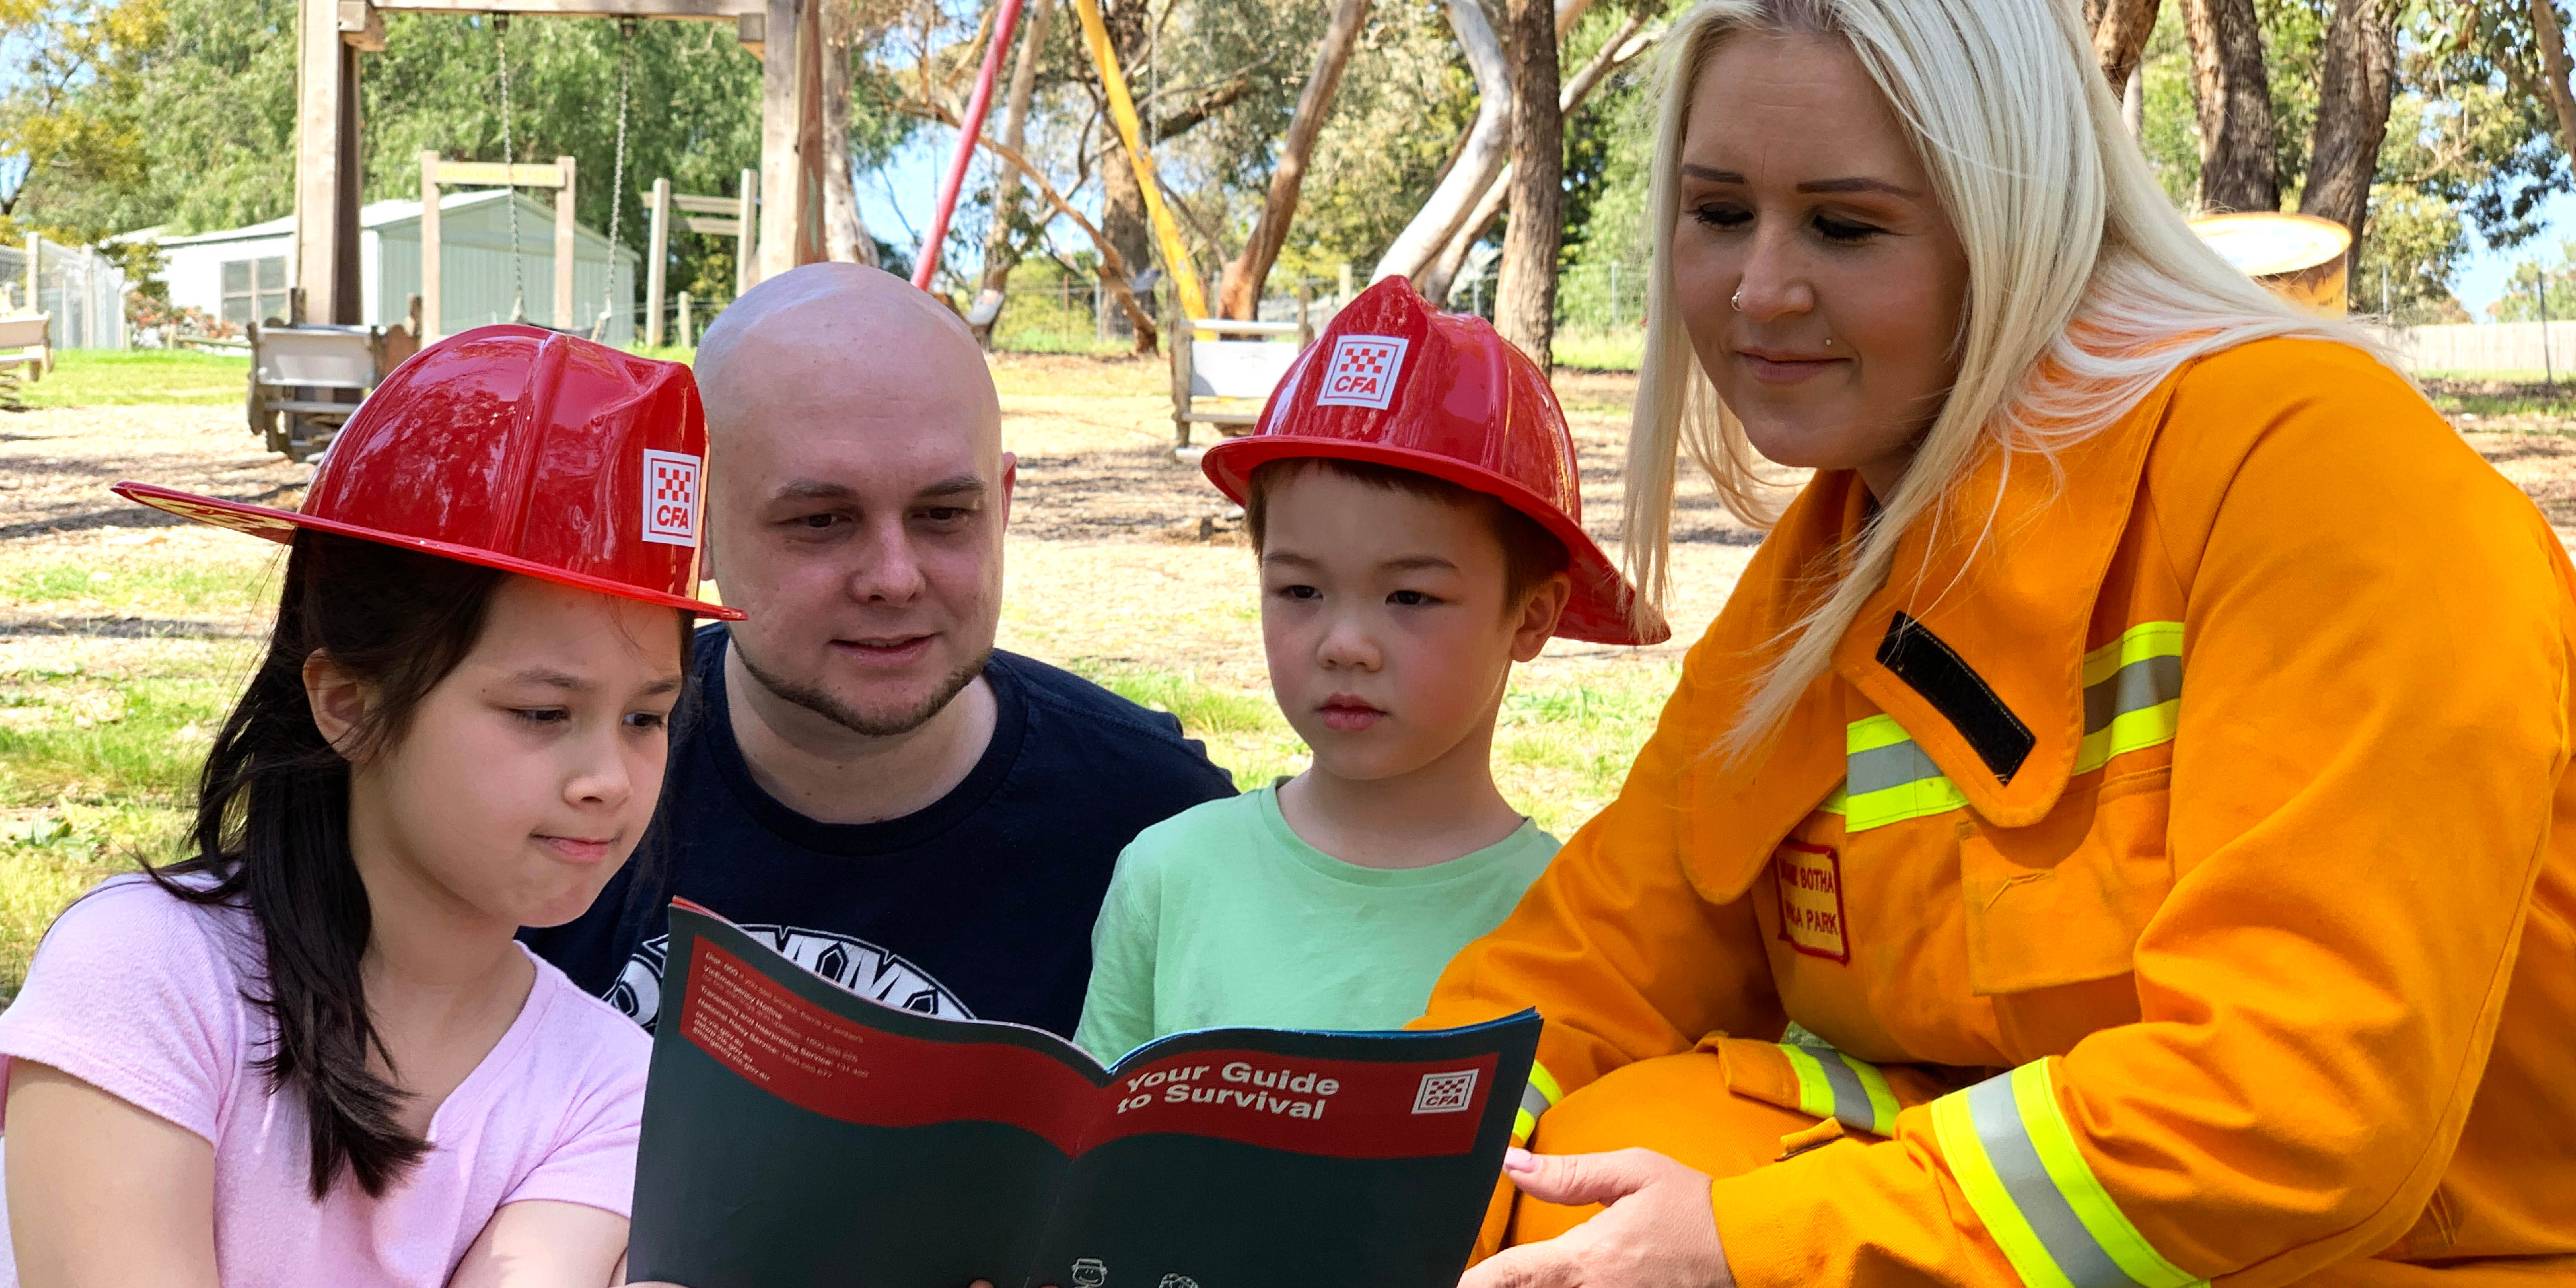 Two emergency workers reading to two kids